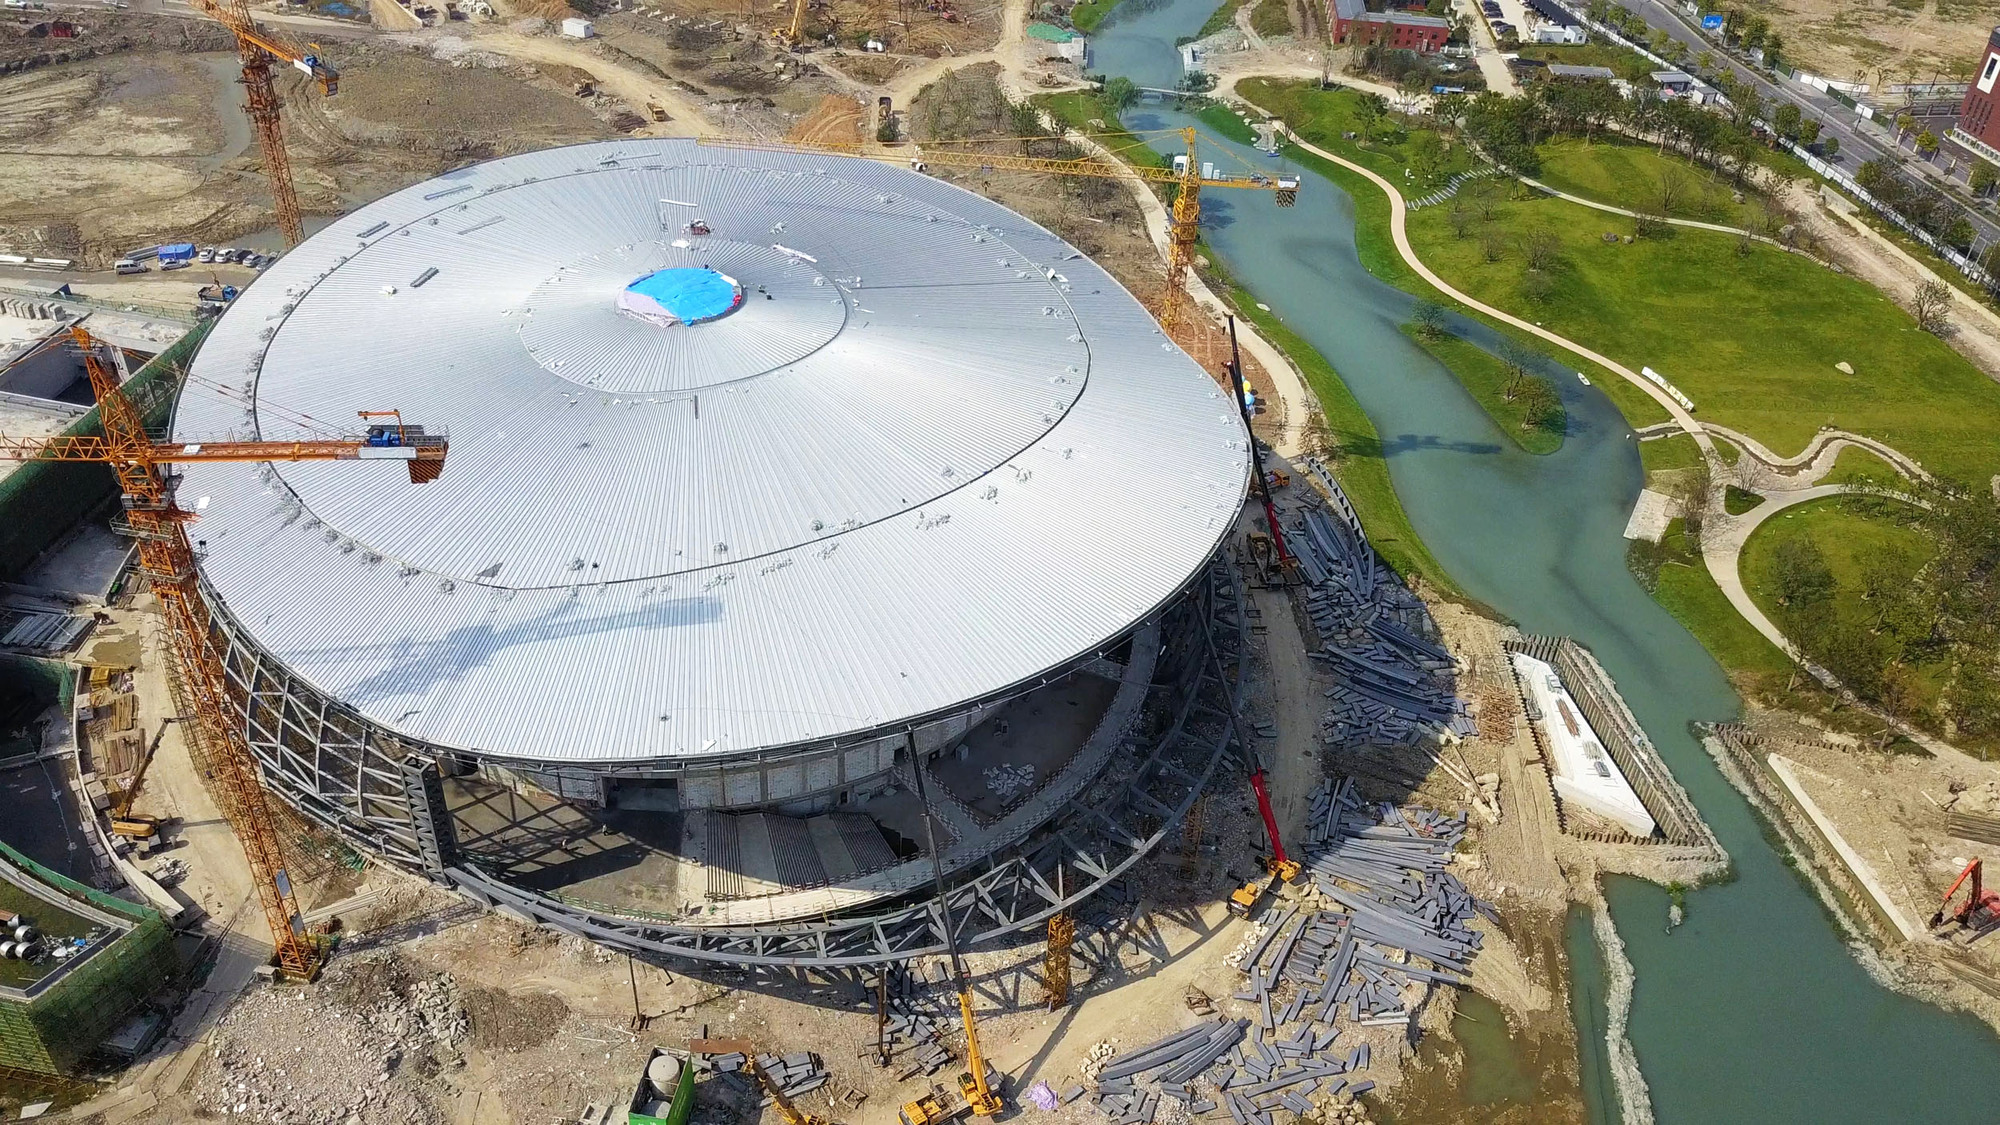 Construction on main structure of Hangzhou Asian Games Village completed 1